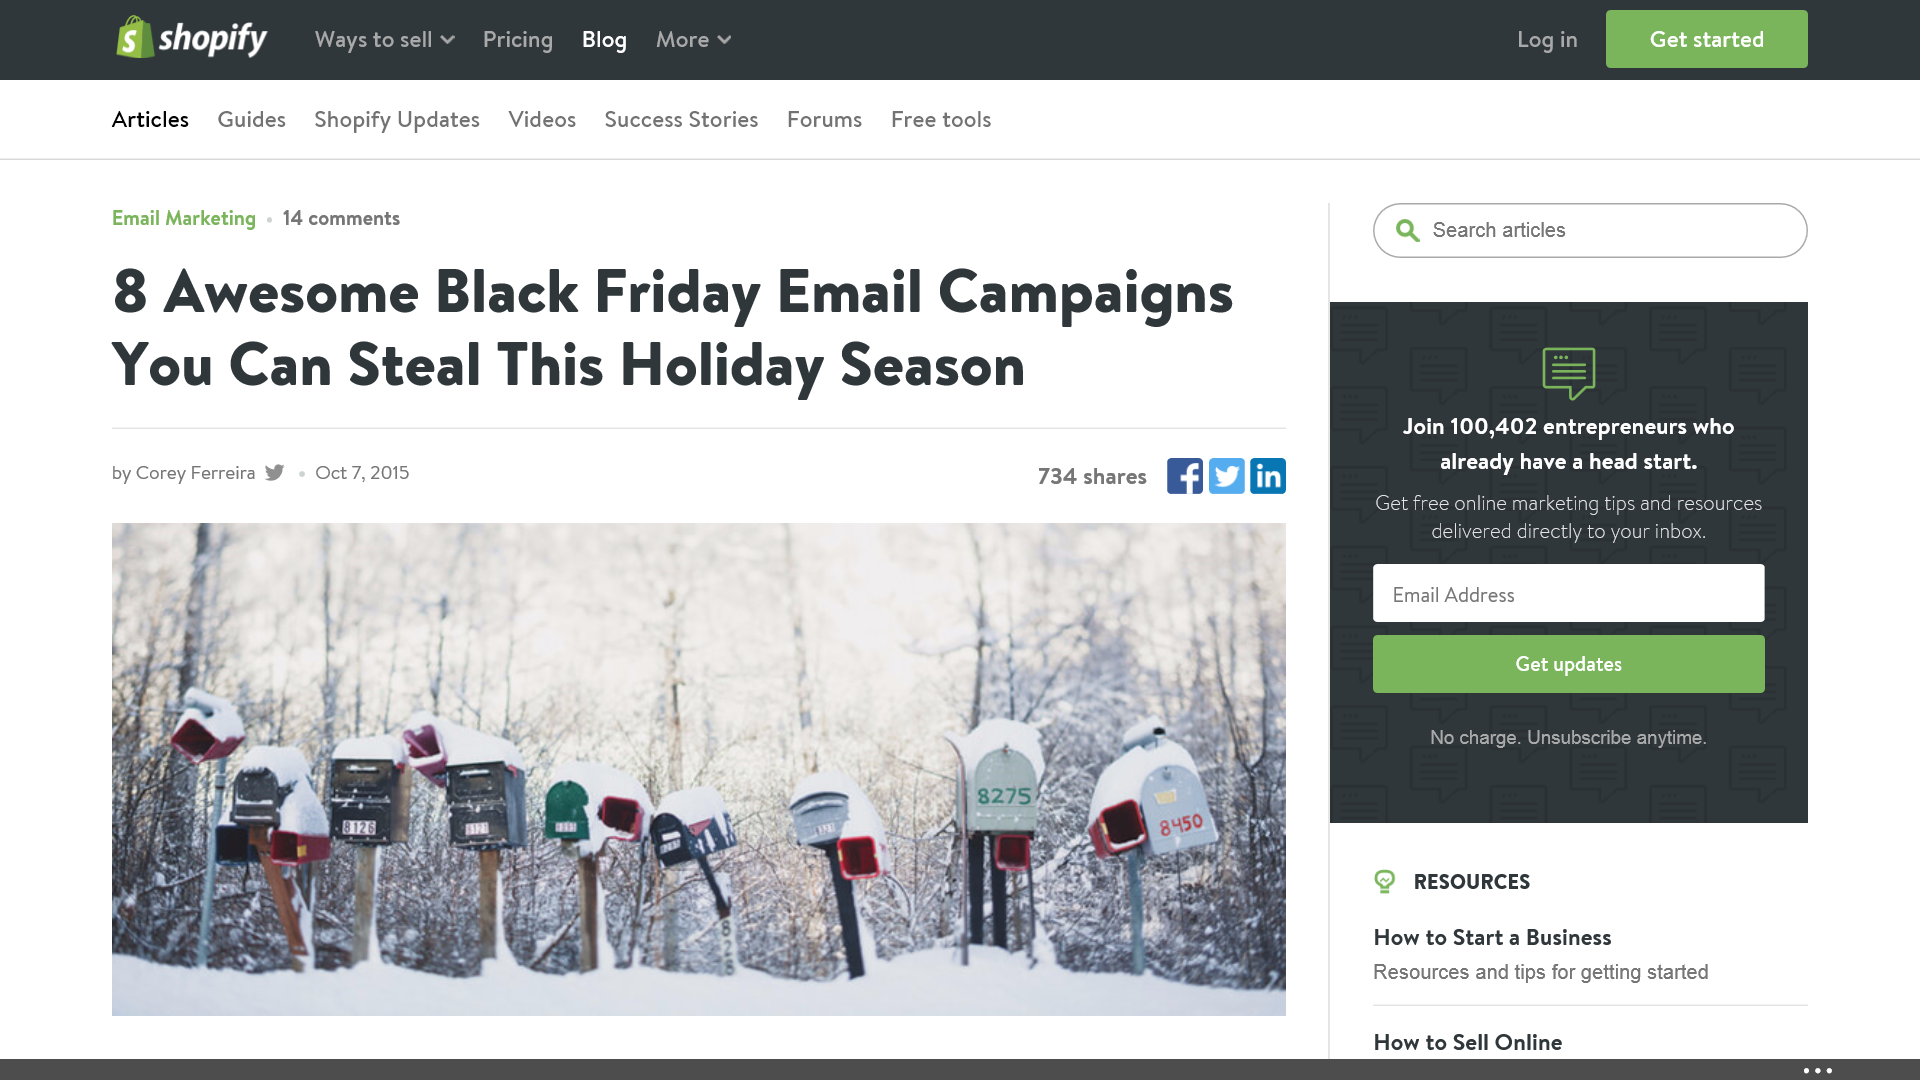 ba778722f 50+ Creative Black Friday and Holiday Email Campaign Ideas | Epic ...